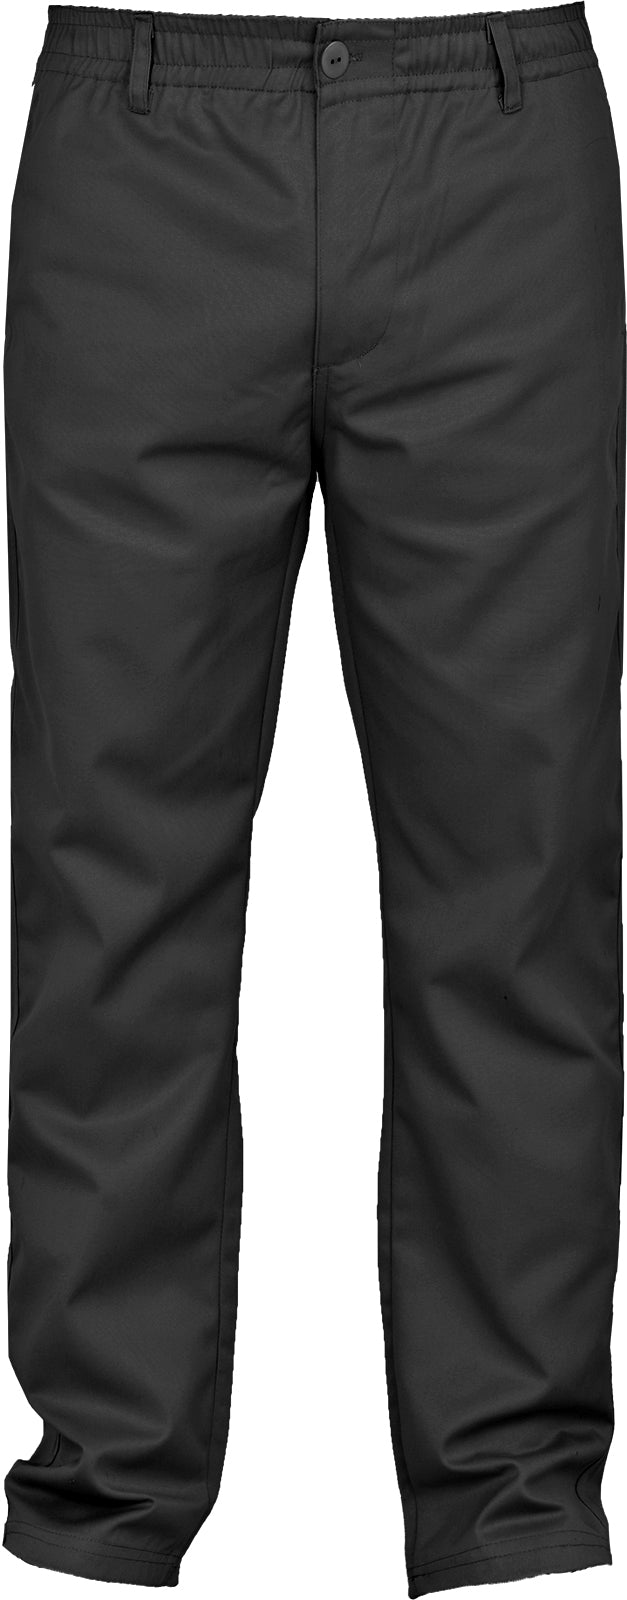 Inside Leg 31 (Mens rugby Trouser with Half Elastic Waistband 40, Black 31